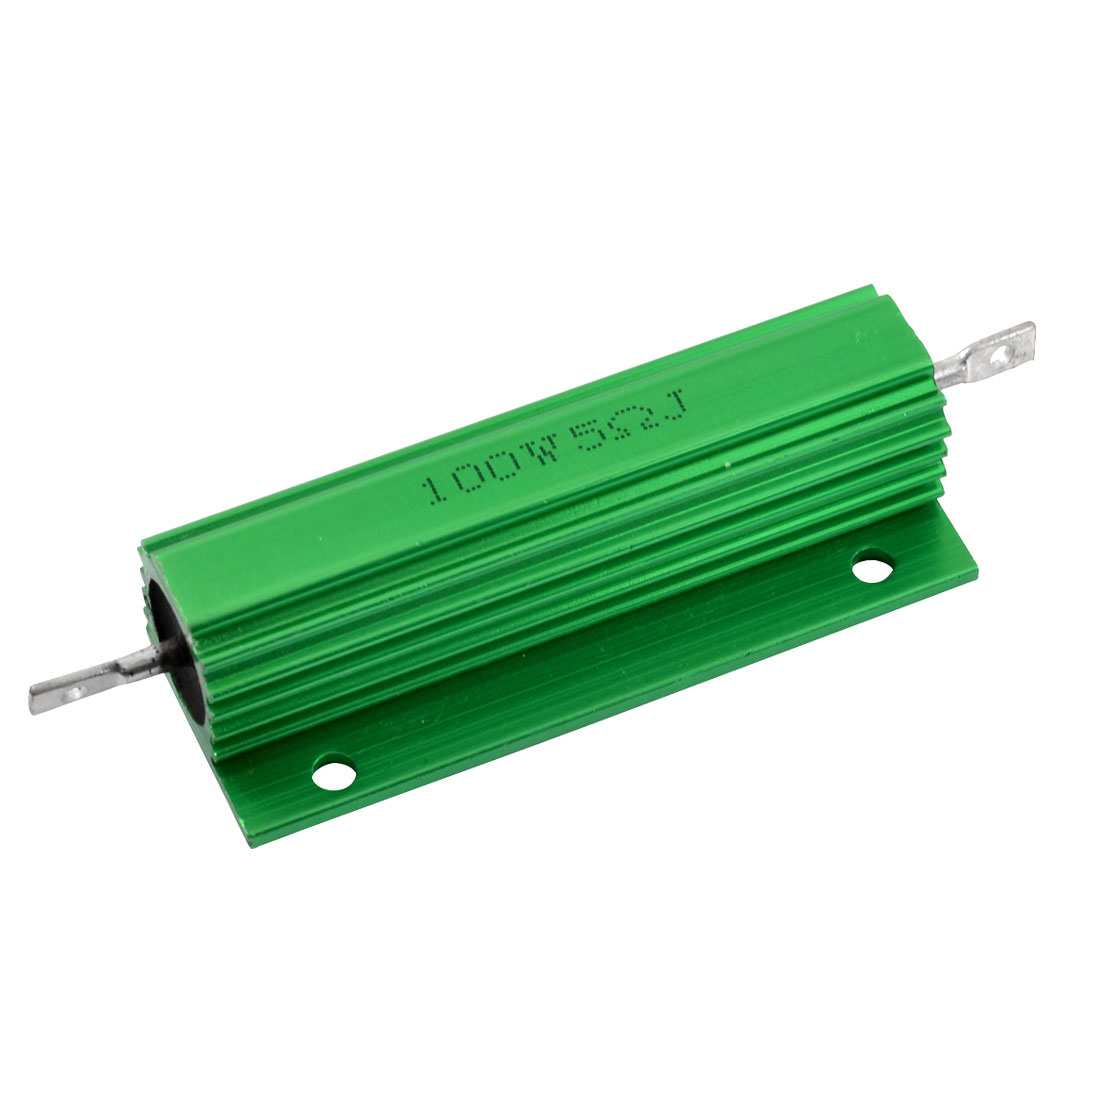 Aluminum Housing Chassis Mounted 100W Watt 5 Ohm Wirewound Resistor